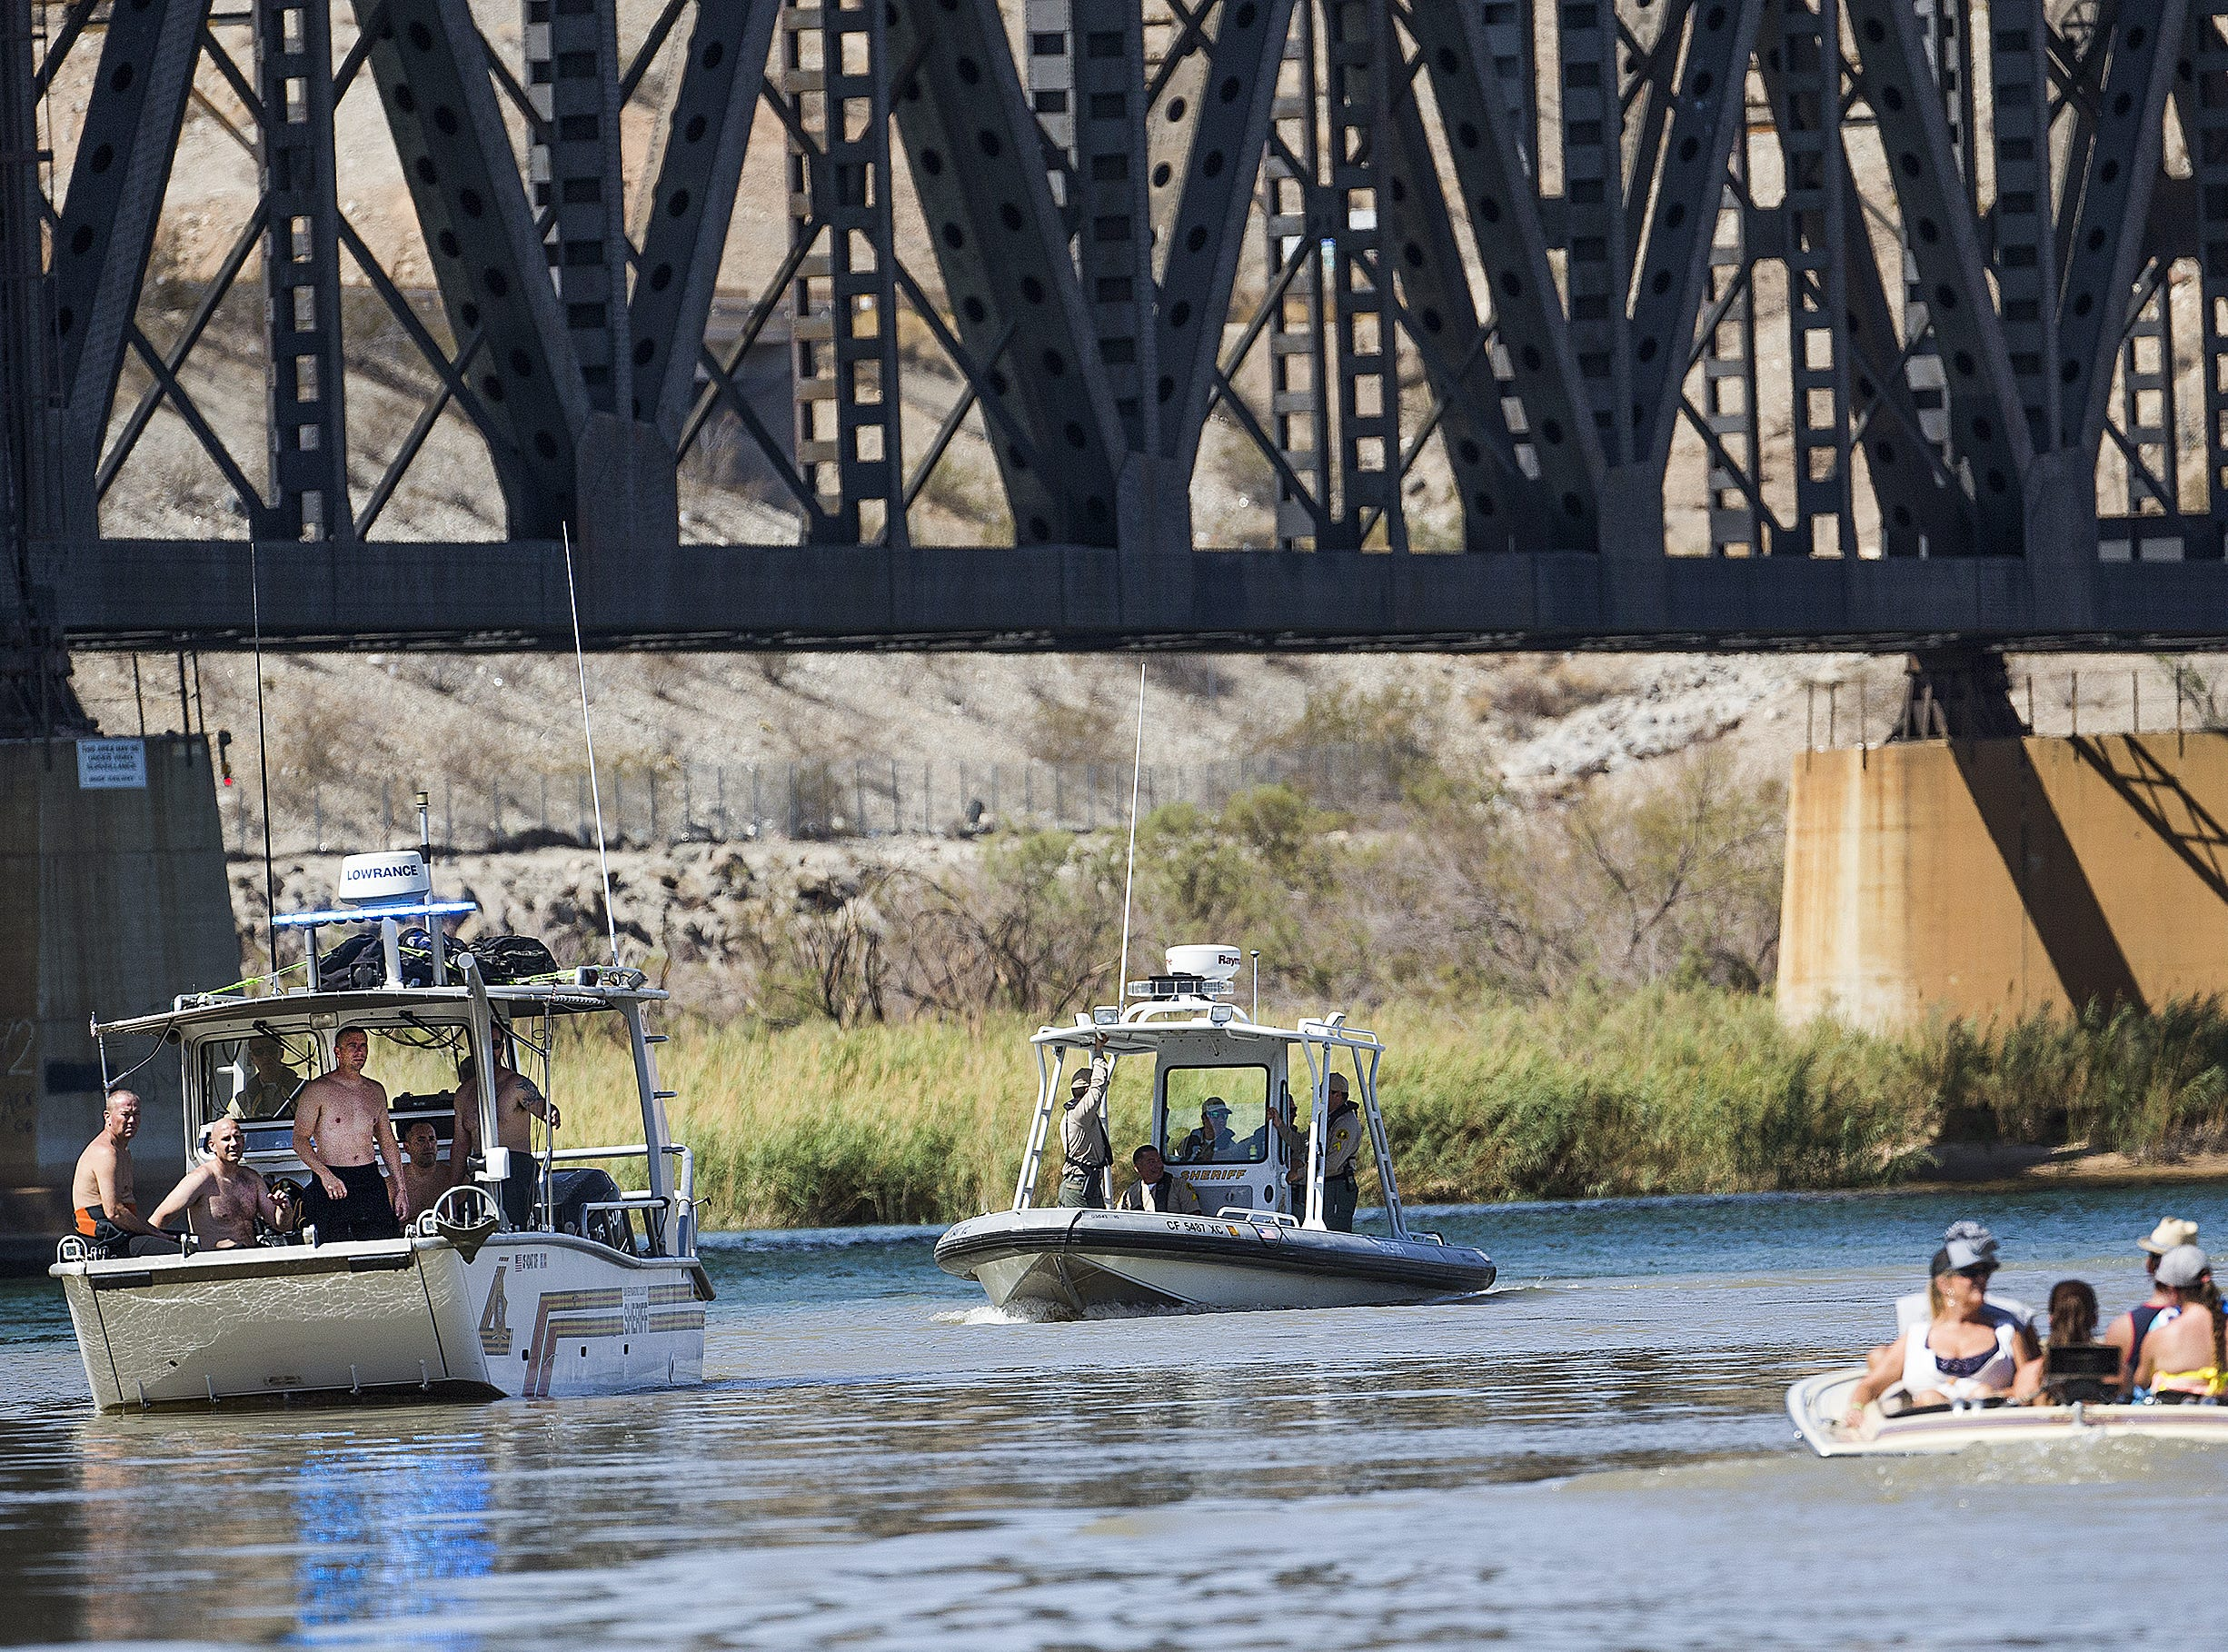 Divers with the San Bernardino County Sheriff's Department are brought back past recreational boaters to the Topoc Marina on the Colorado River while searching for three people still missing from a boat collision Saturday night on the River.  The marina is 30 miles north of Lake Havasu City.  Nine people were injured in the crash.